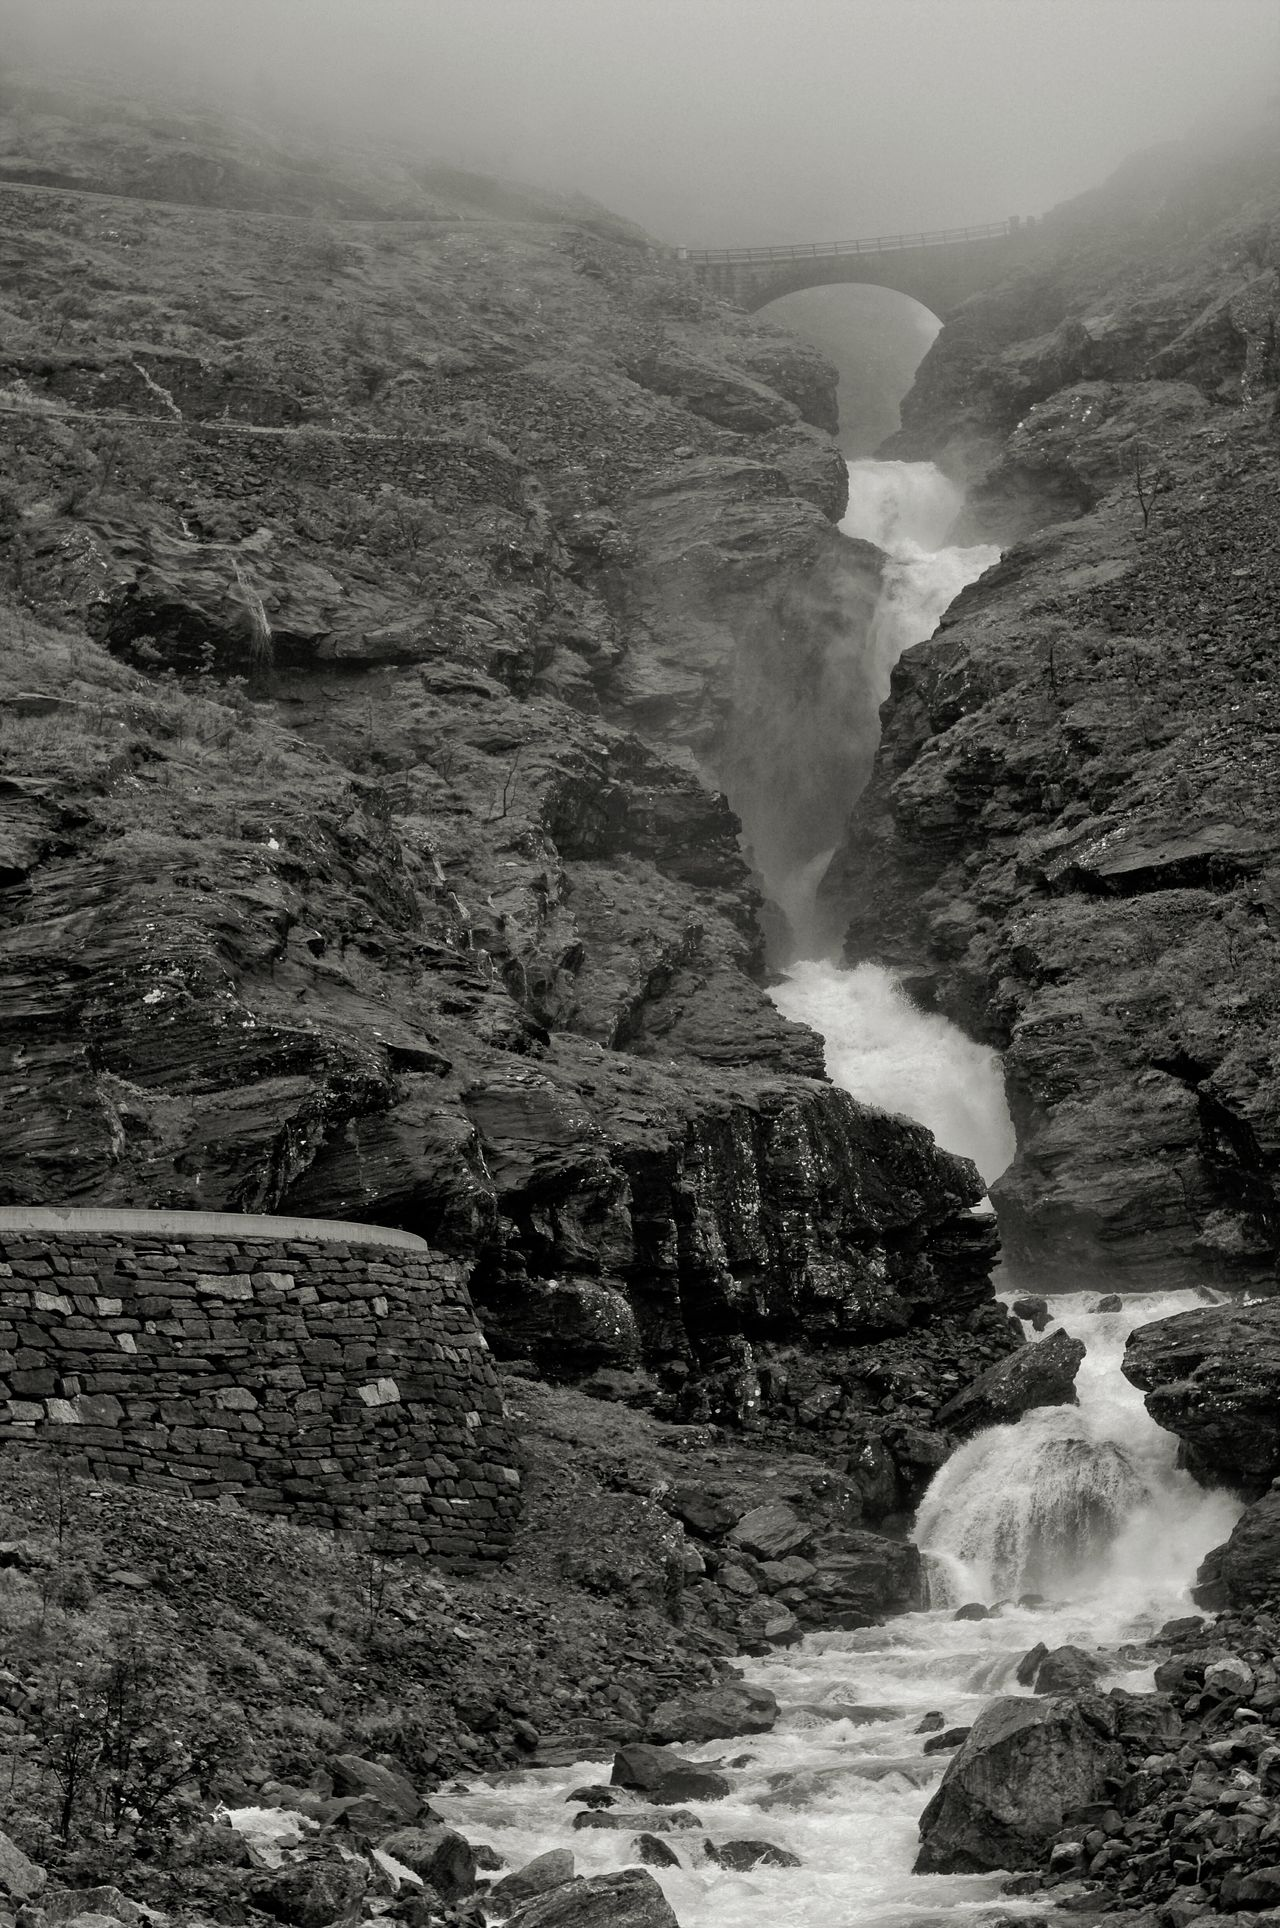 Norway Trollstigen Norway🇳🇴 Black And White Outdoors Landscape Nature No People Vertical Monochrome Photography Fujifilm X-e1 Low Clouds Trollstigen Awesome Nature